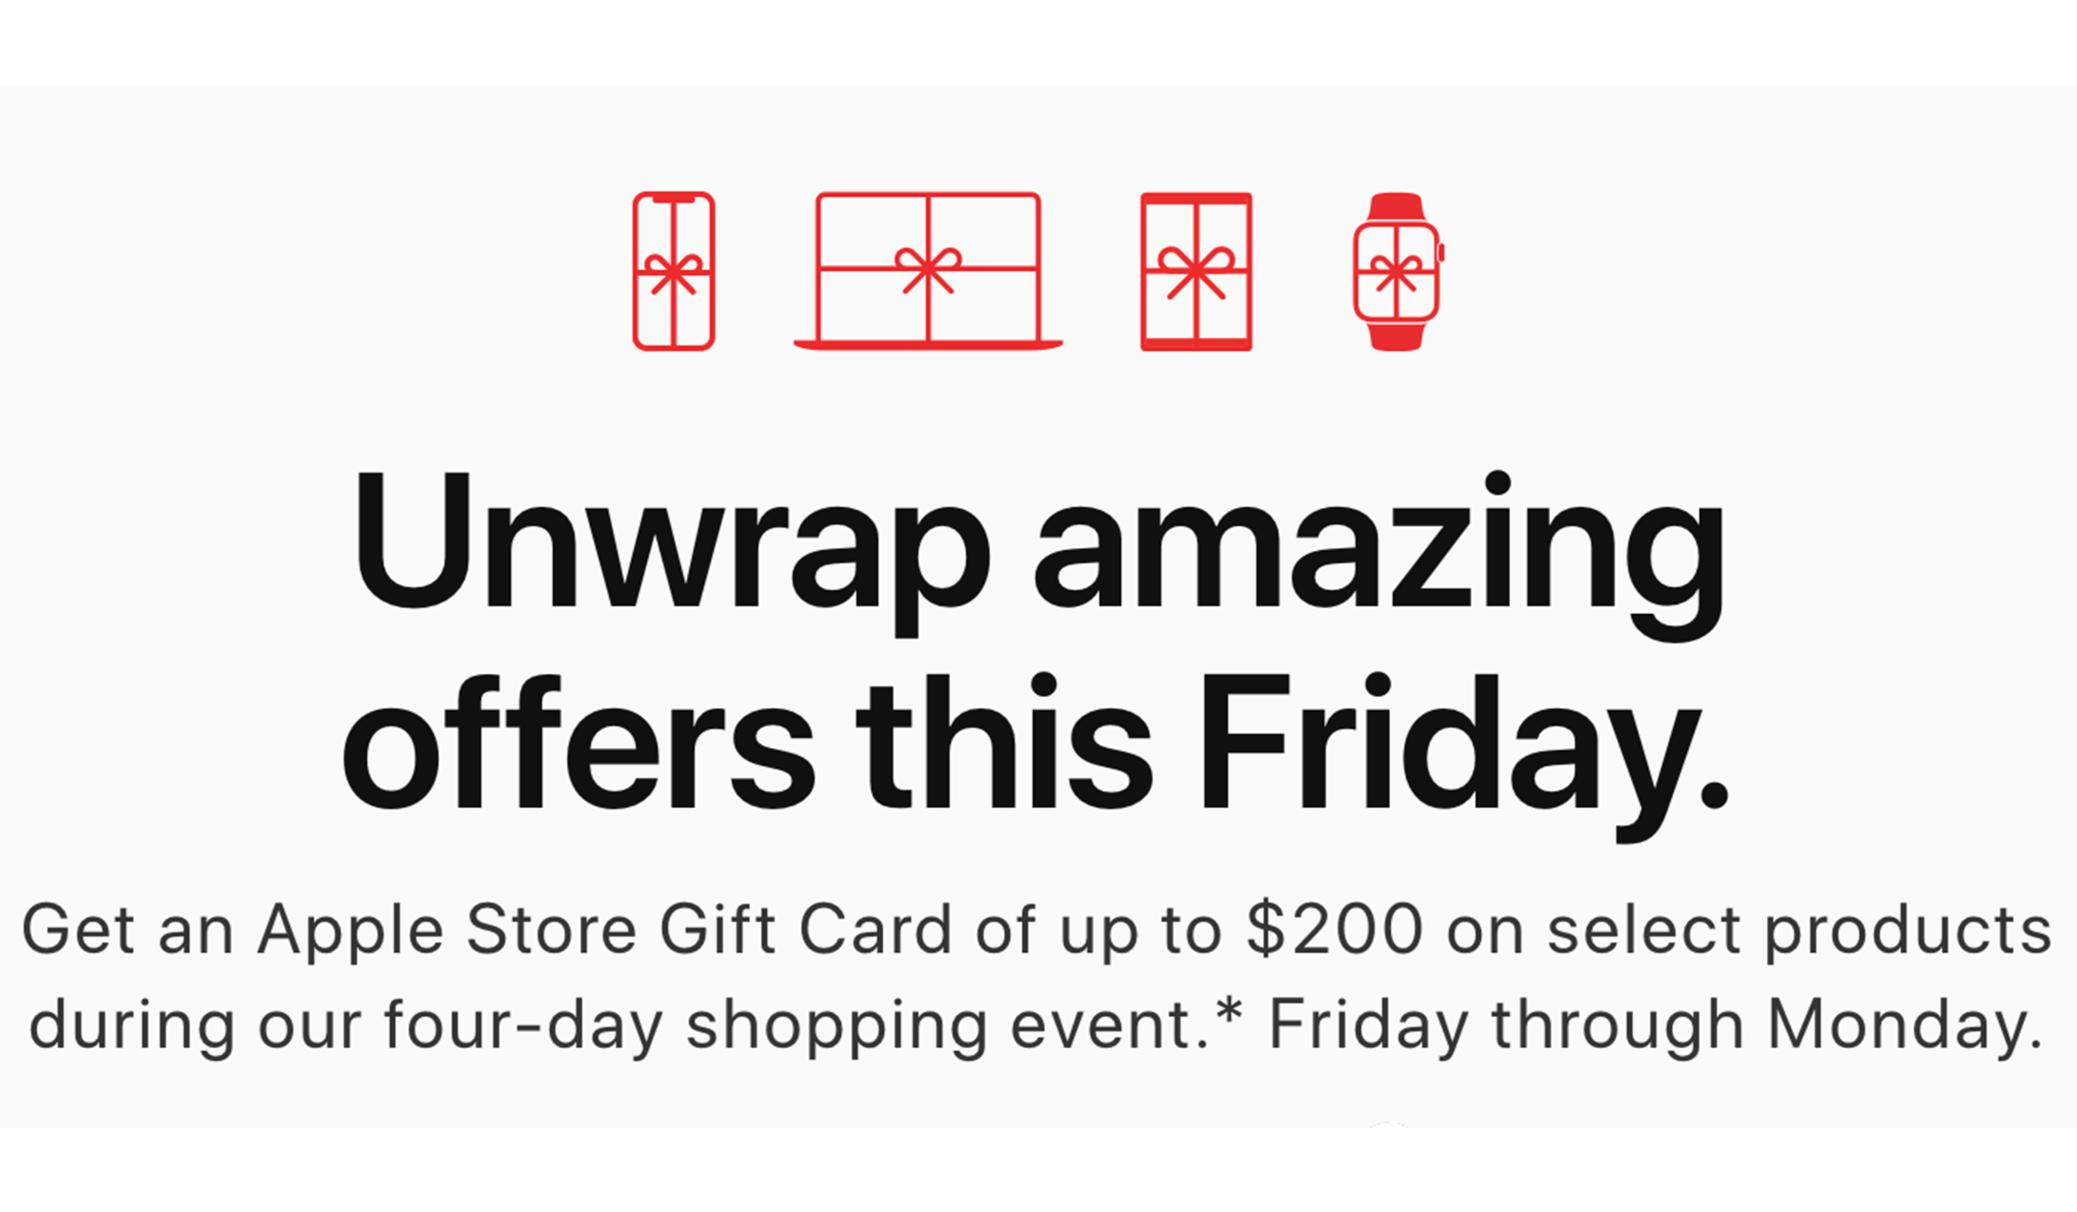 Apple Announces A Four Day Shopping Event For Black Friday And Cyber Monday Cnn Underscored